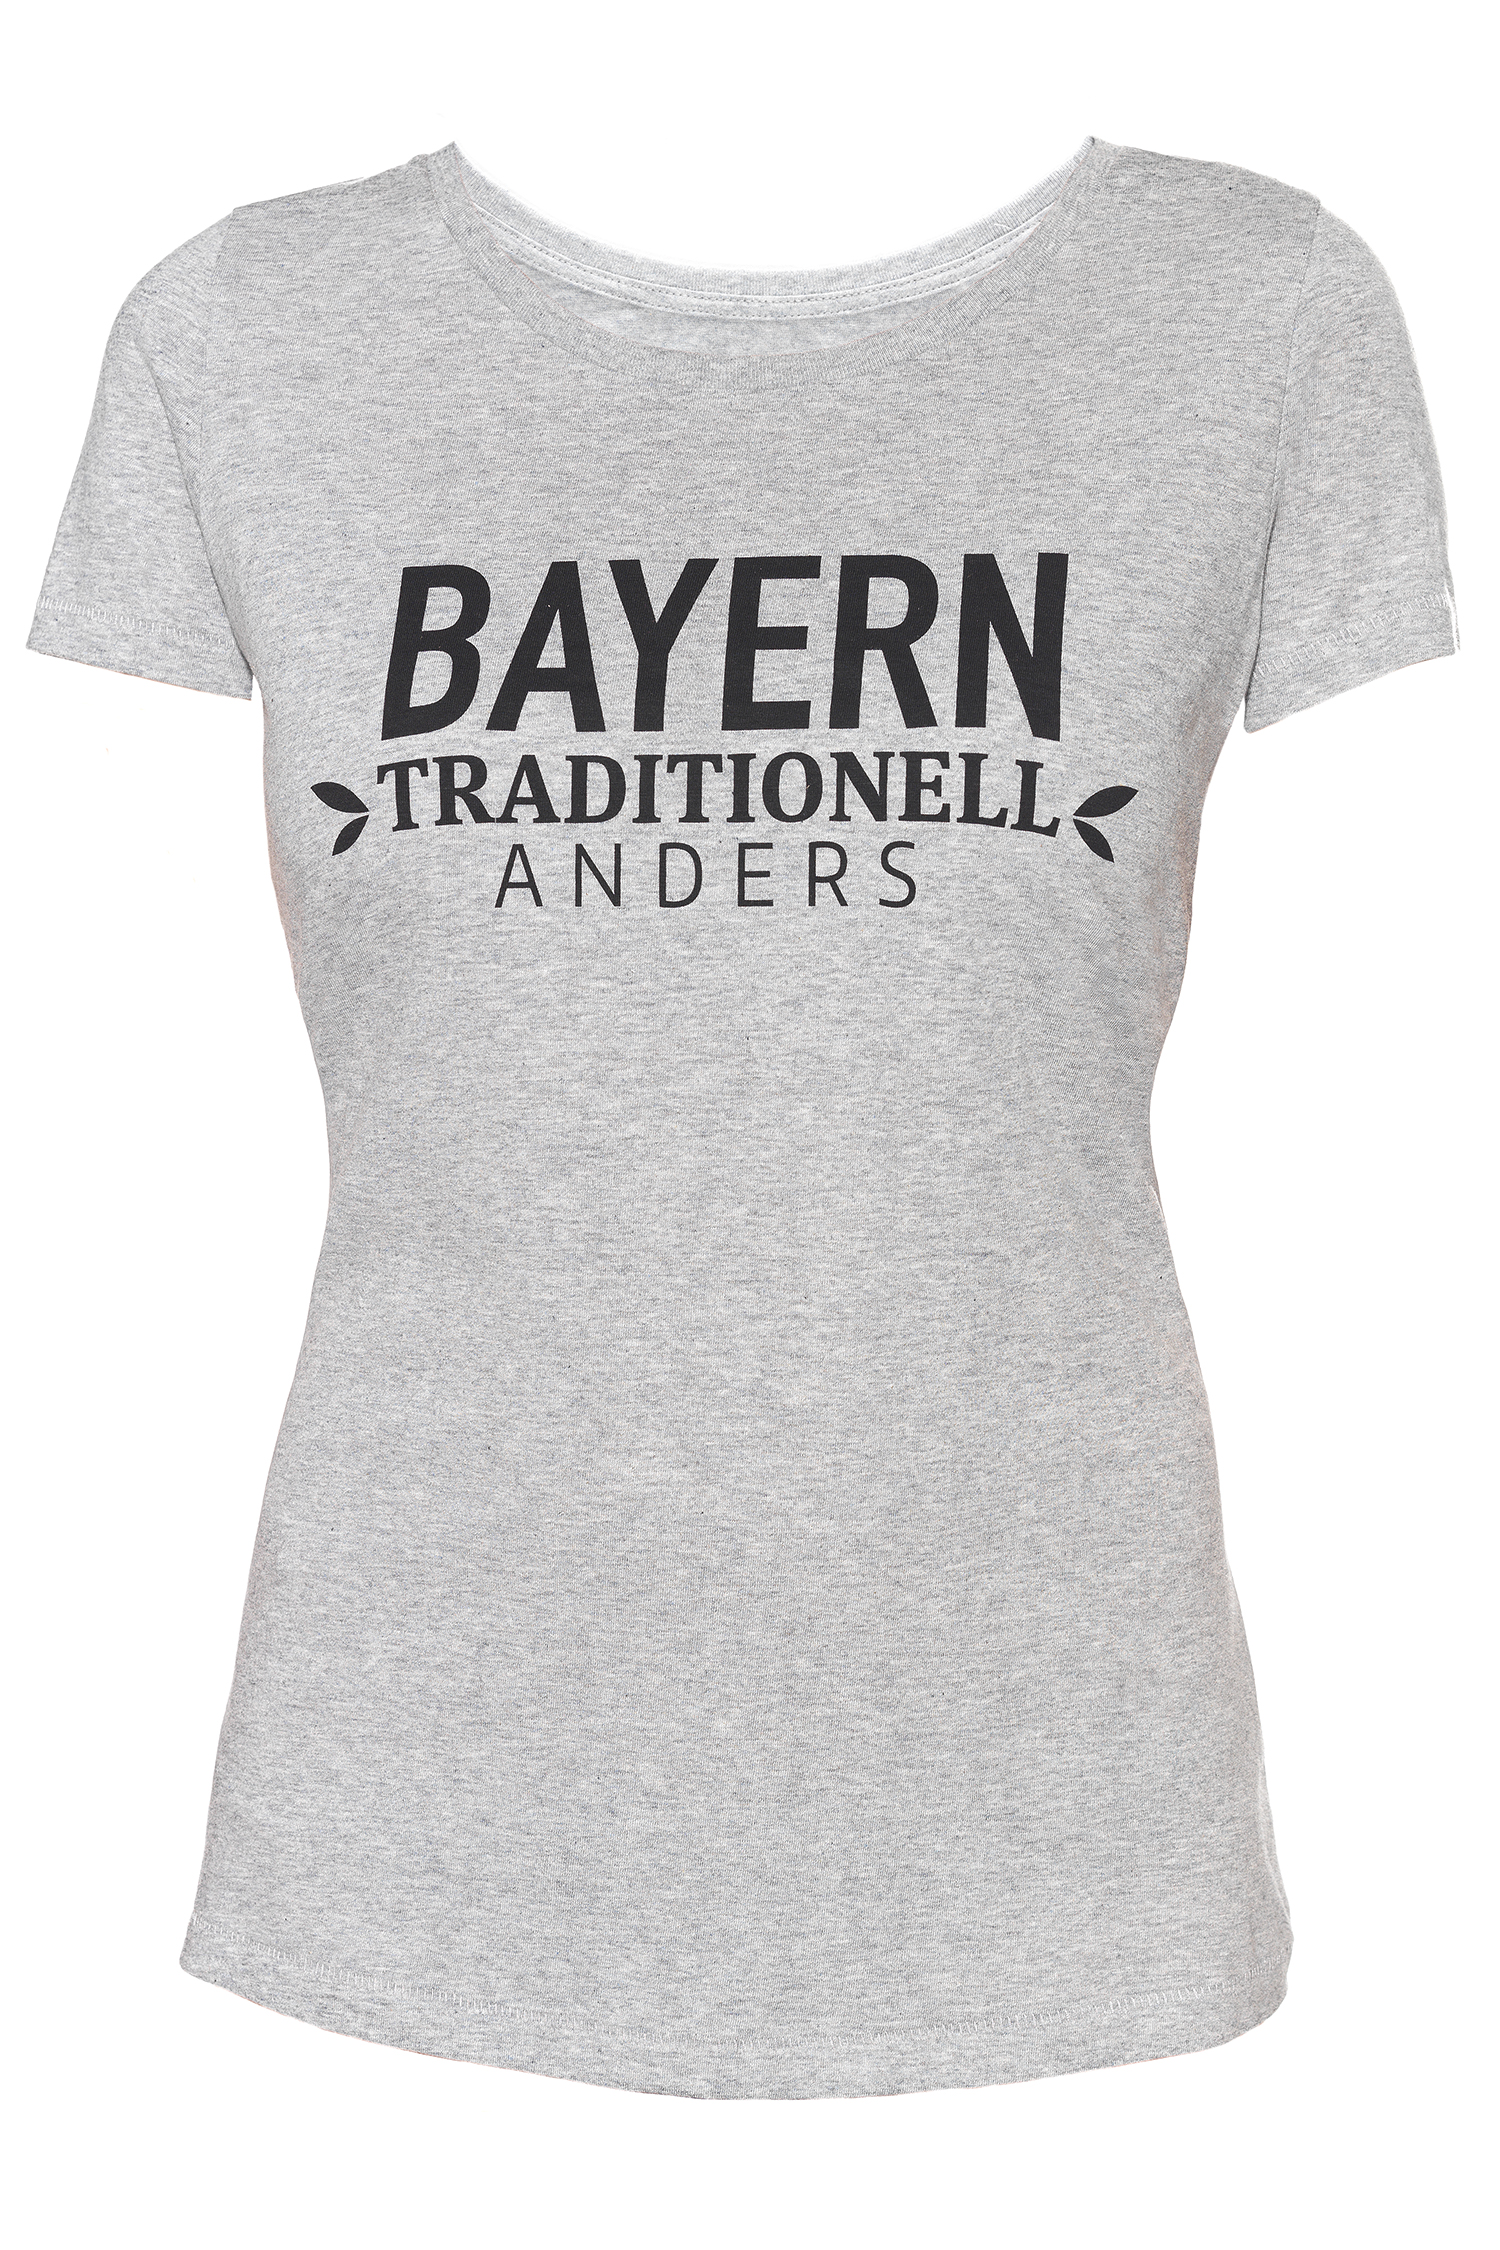 T-Shirt Bayern traditionell anders Damen S | grau / schwarz